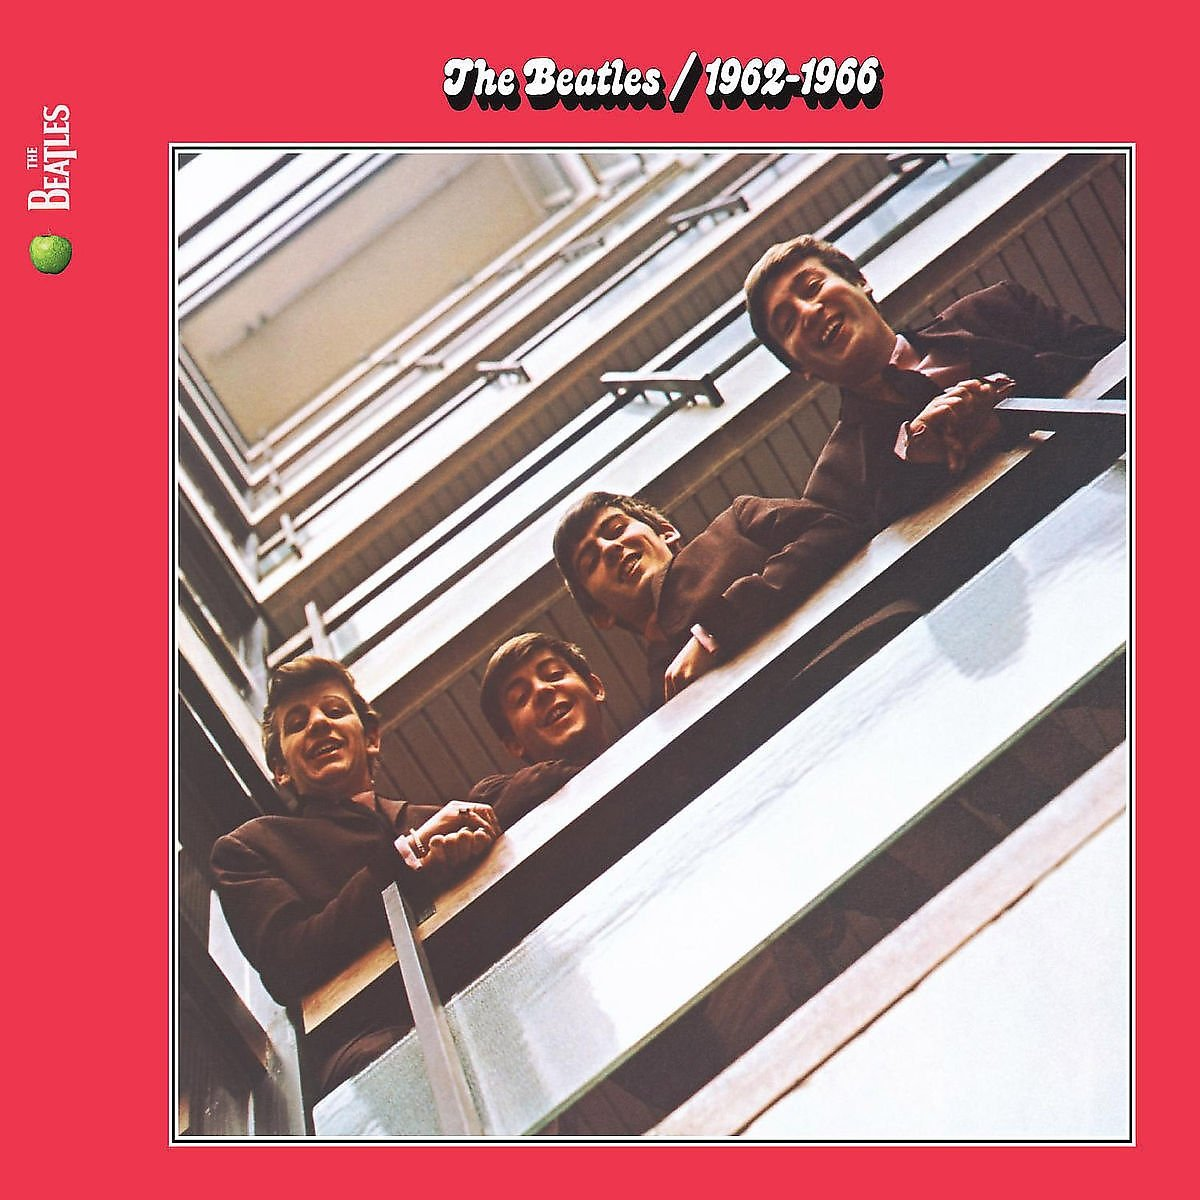 The Beatles: 1962-1966 by Parlophone